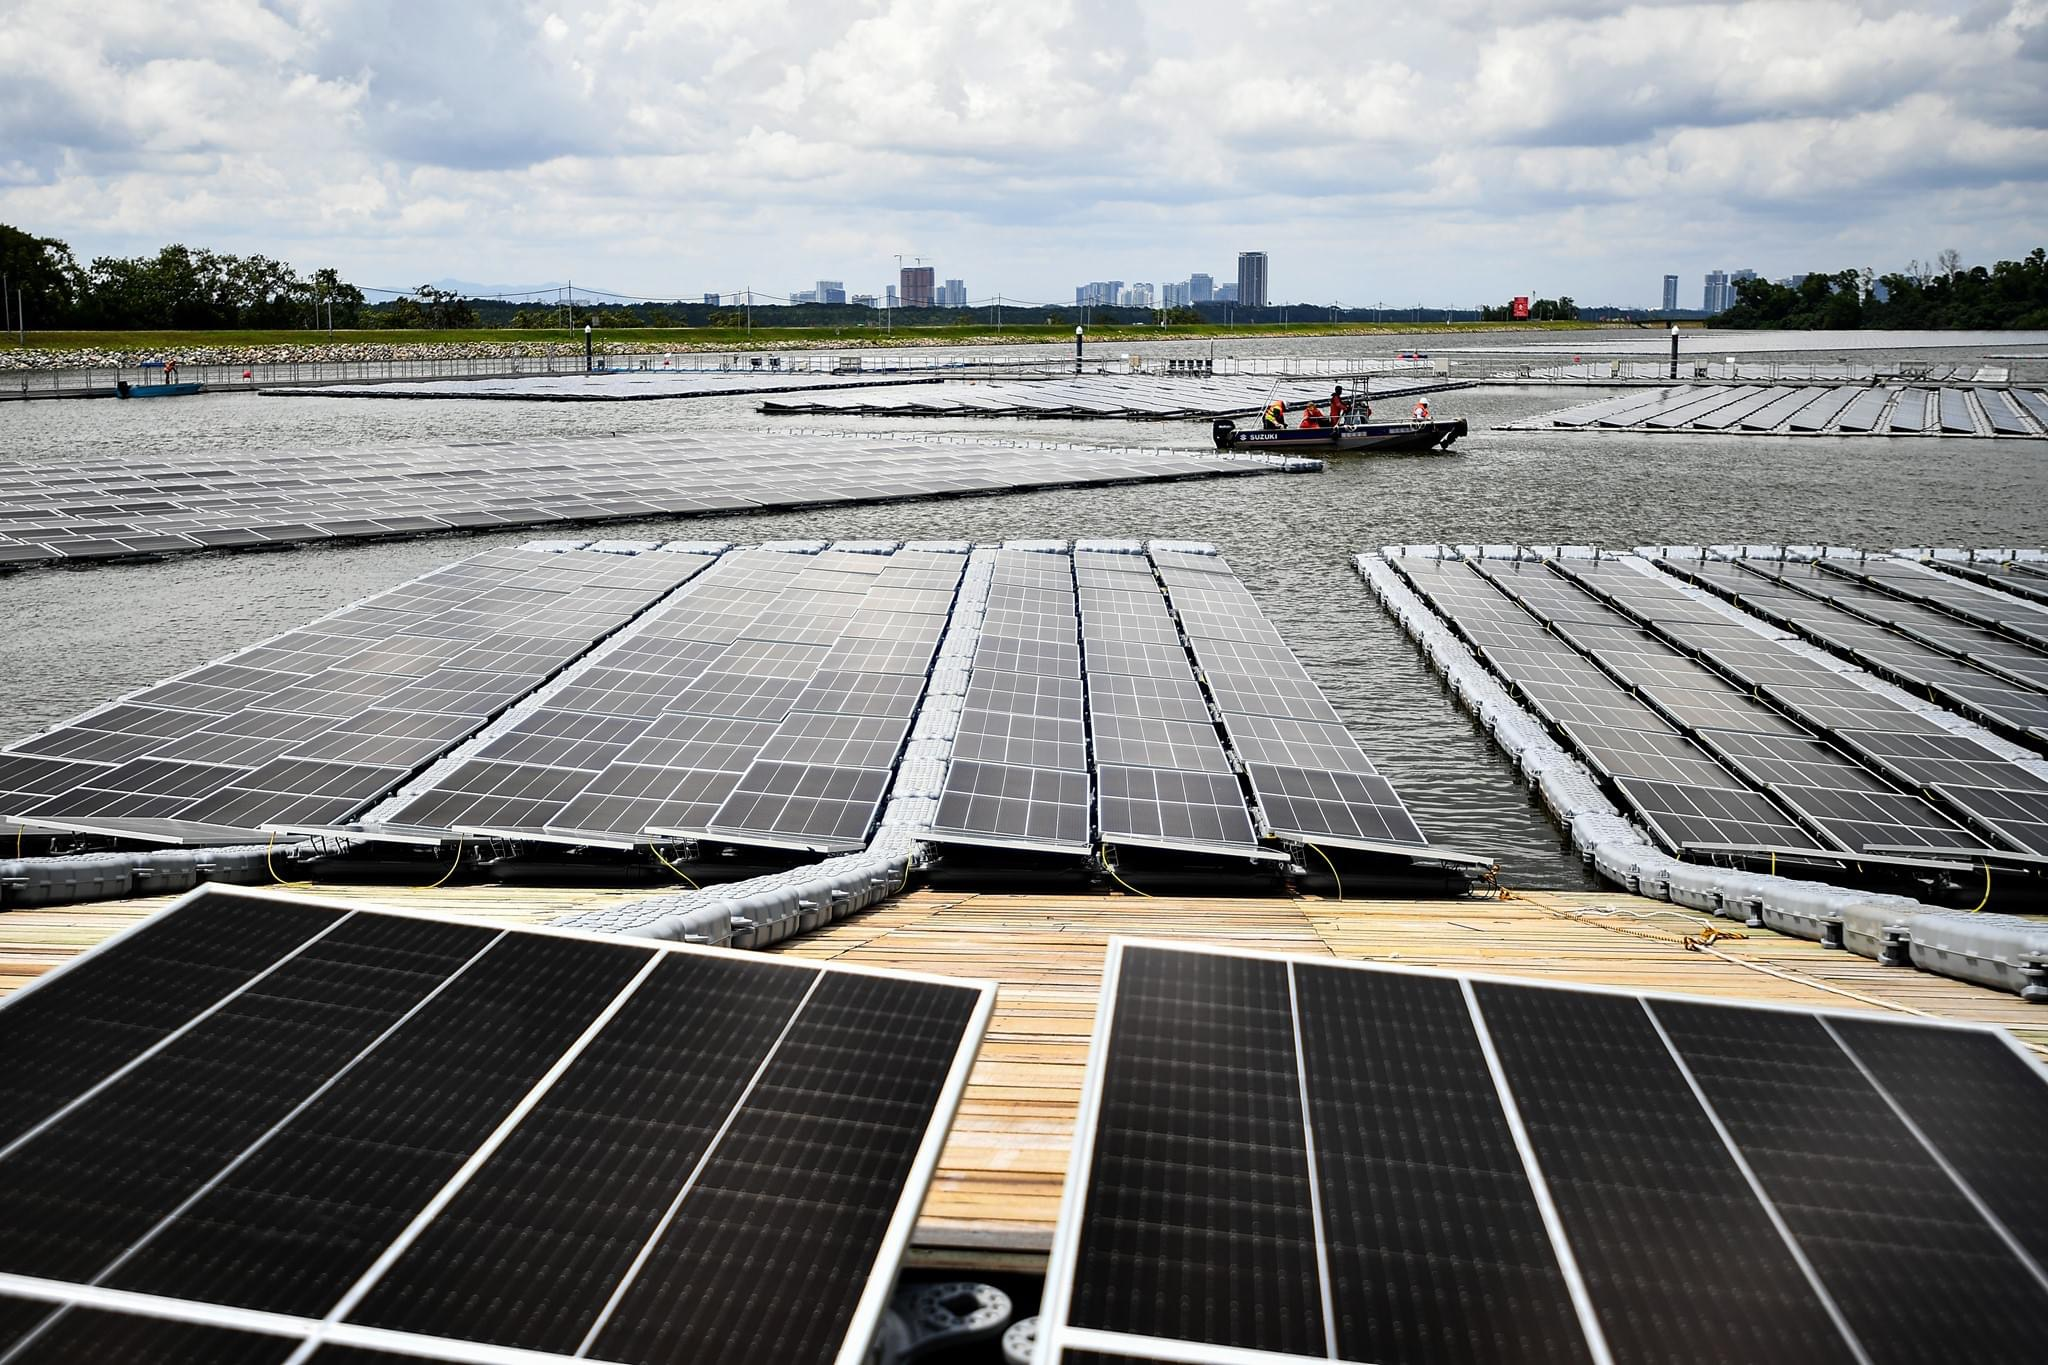 Spanning 45 hectares - the equivalent of about 45 football fields - the Sembcorp Tengeh Floating Solar Farm contains 122,000 solar panels, which are durable enough to last 25 years.